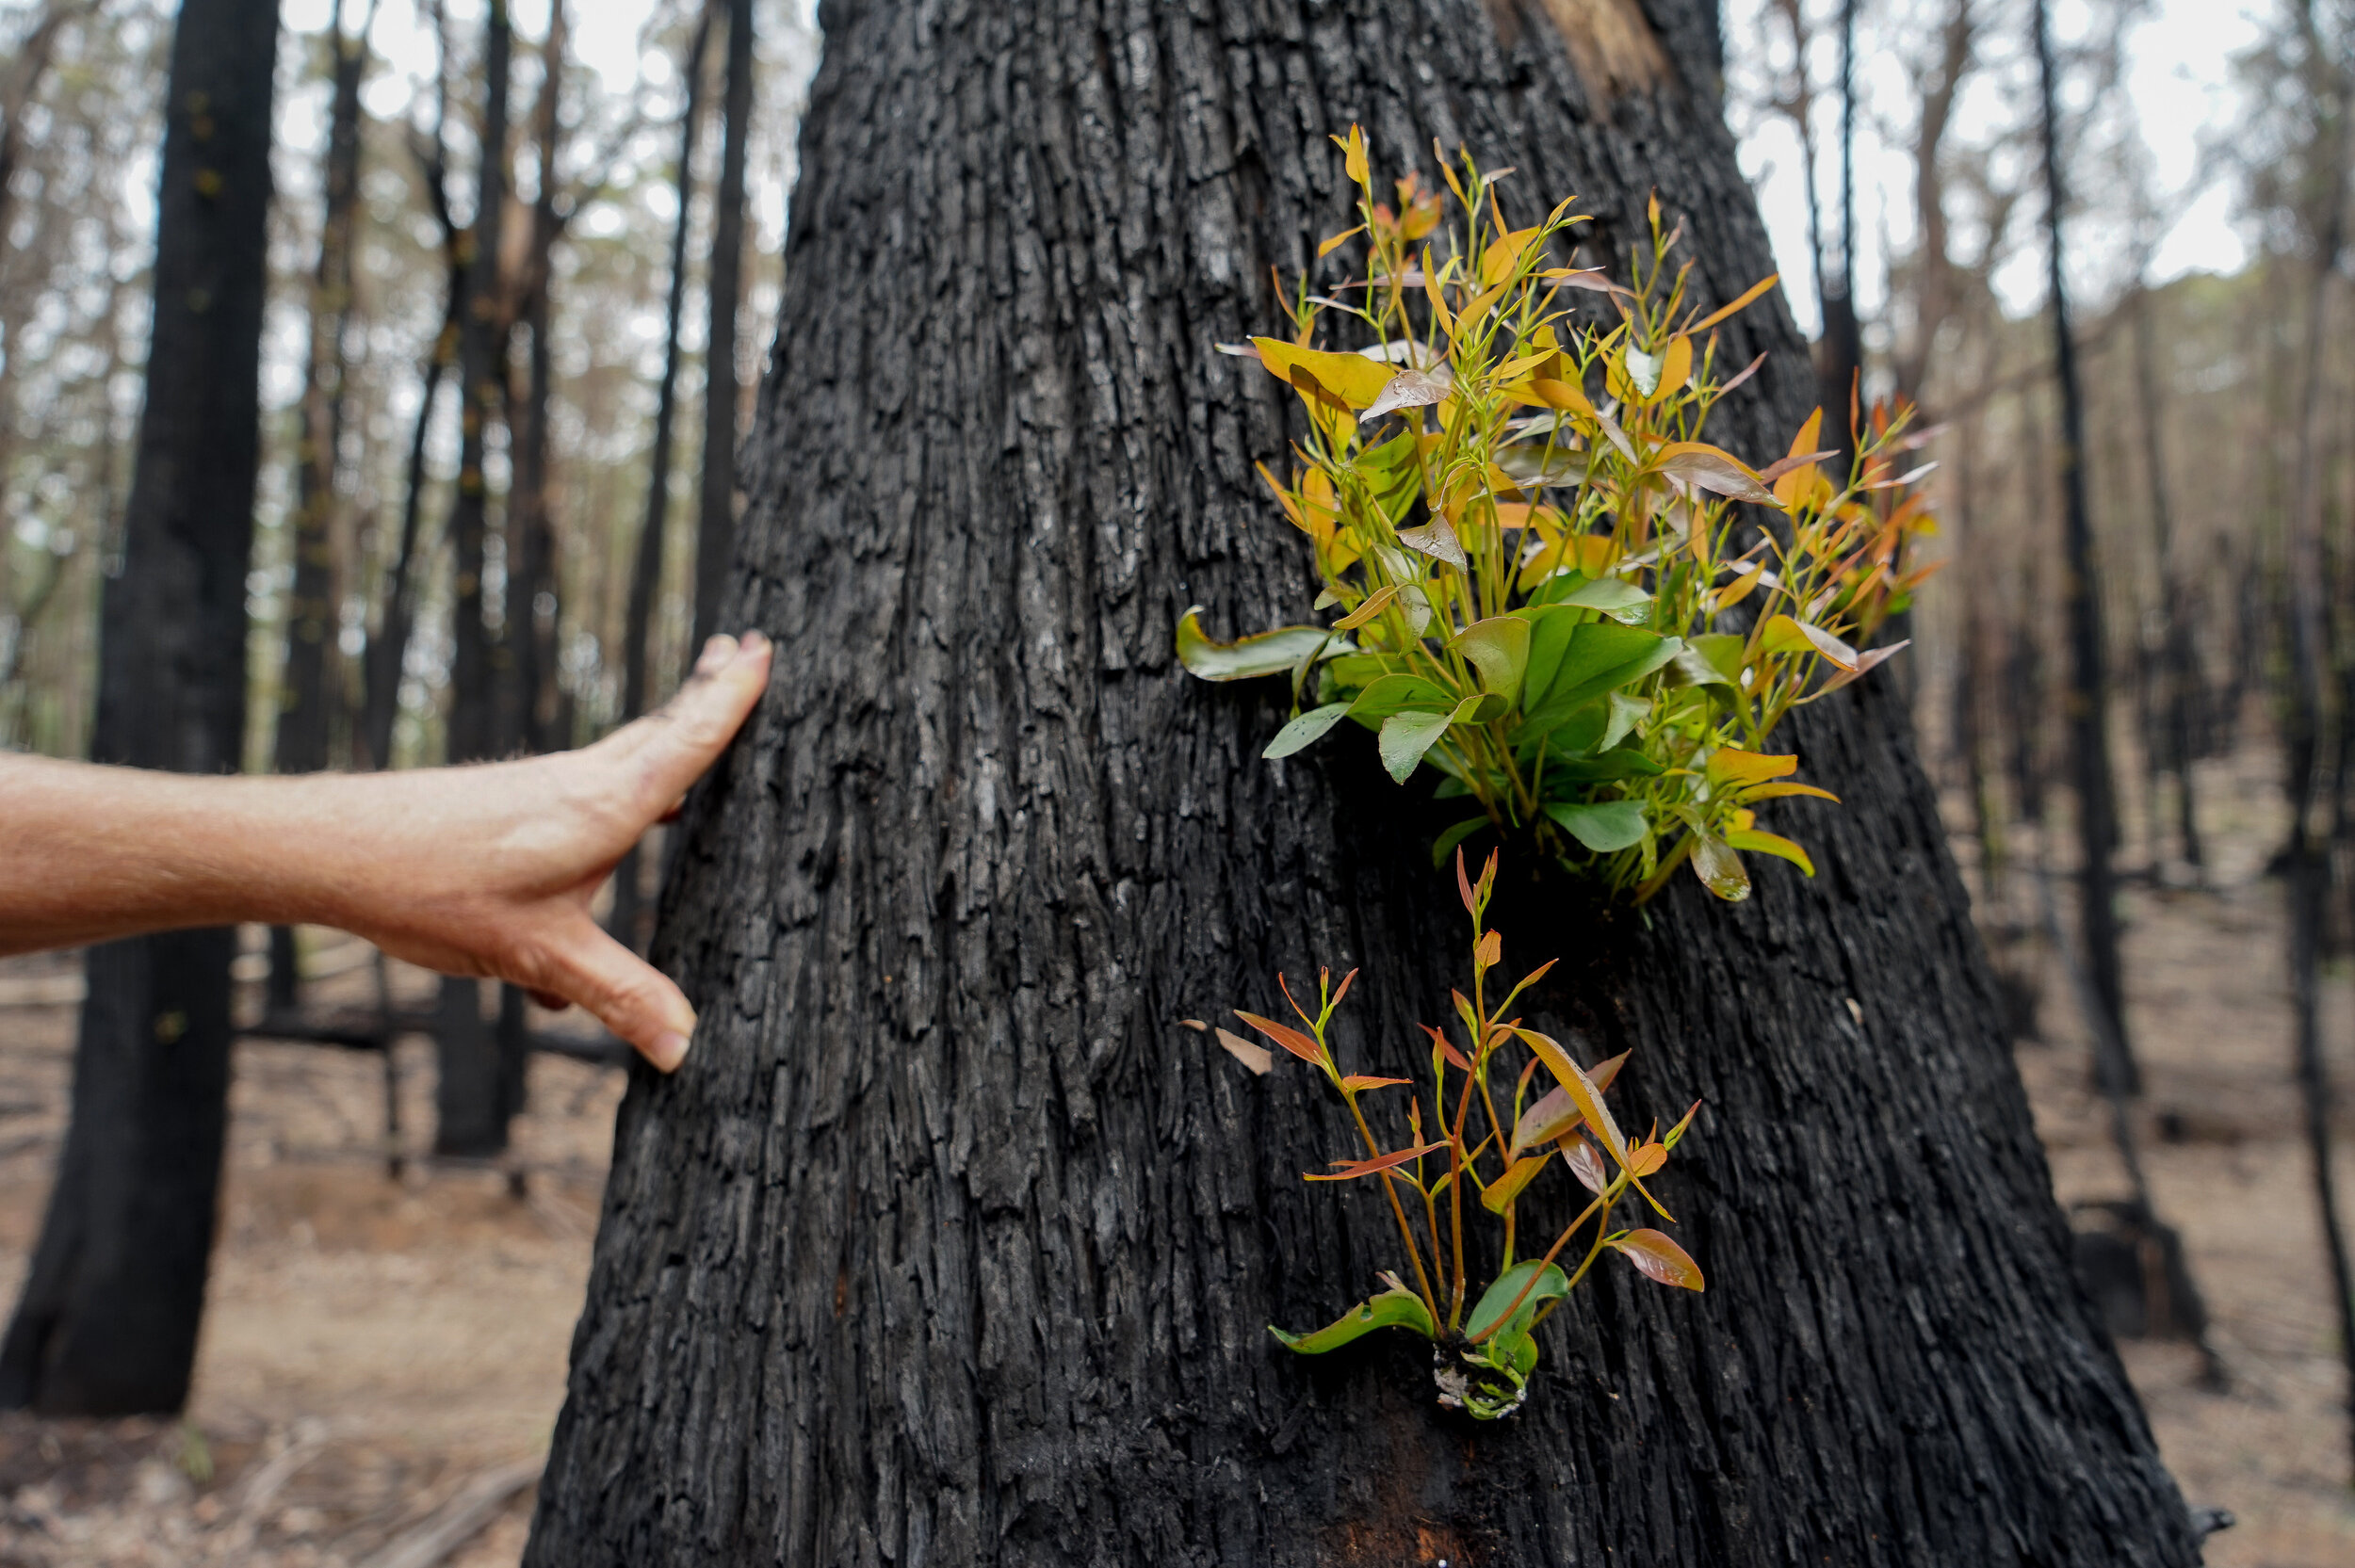 Regrowth Seen in Australia's Burned Forests